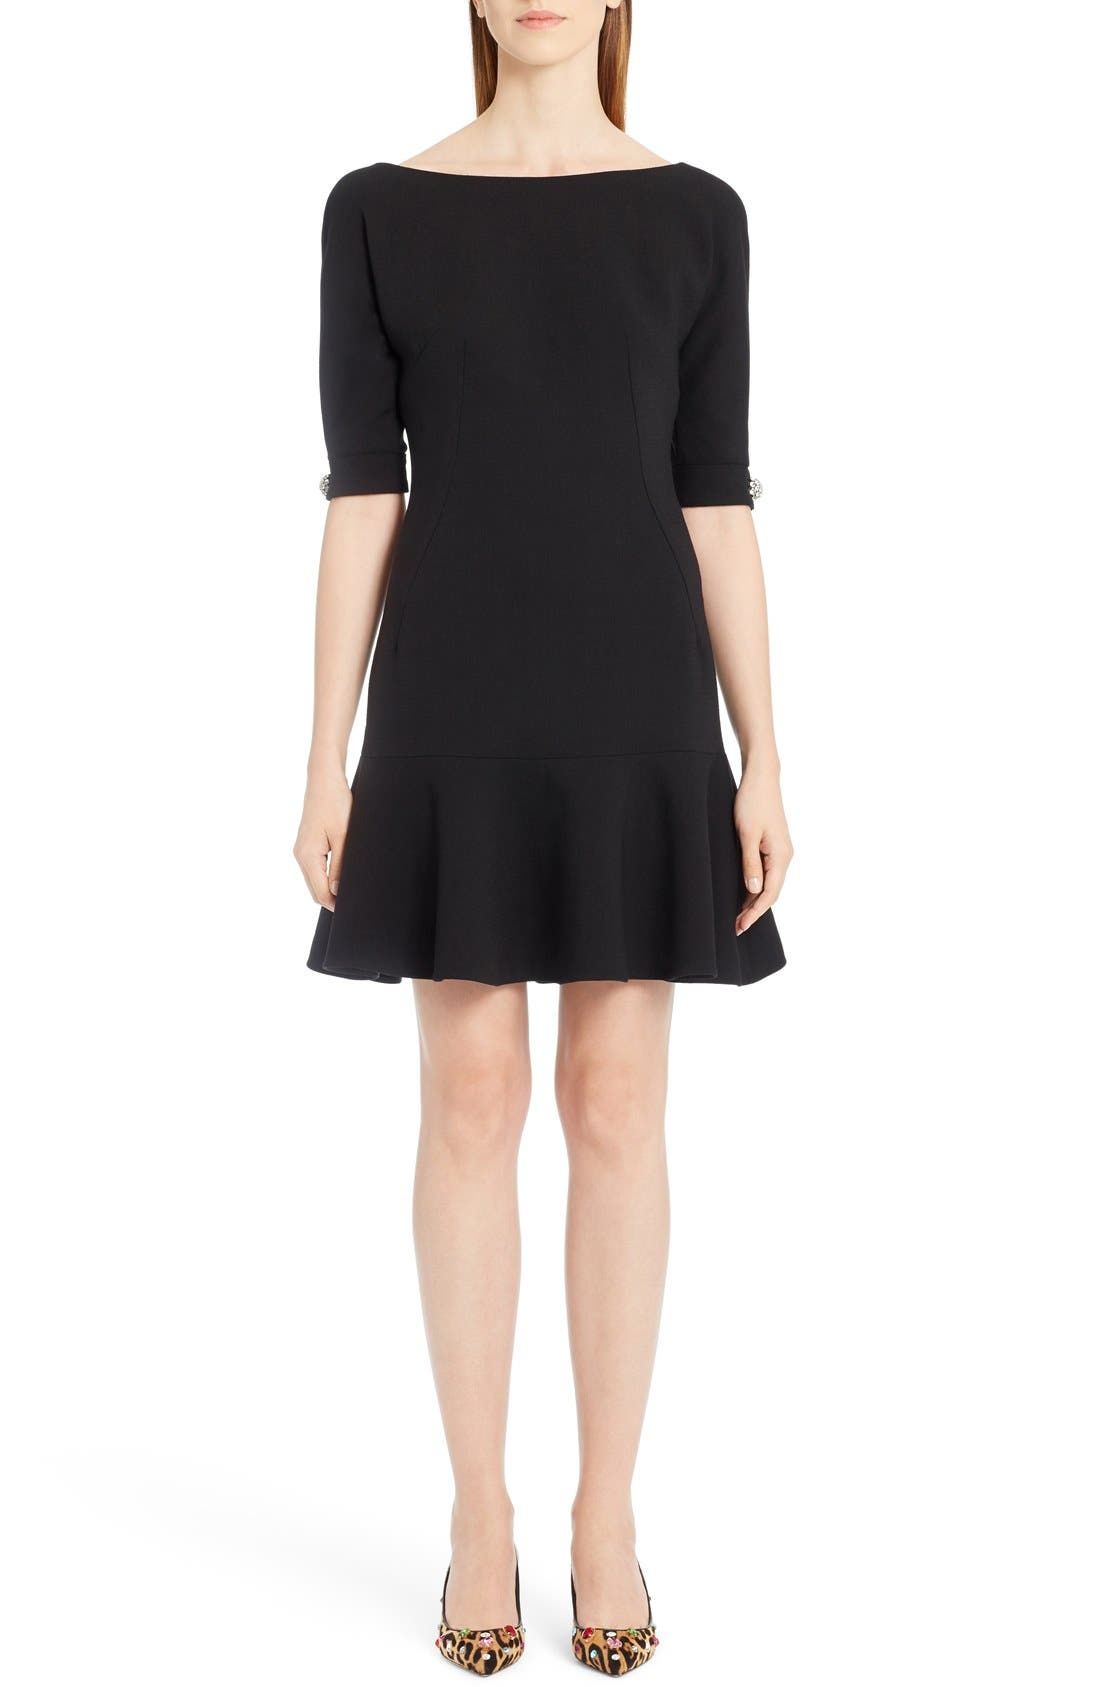 Dolce&Gabbana Stretch Wool Fit & Flare Dress